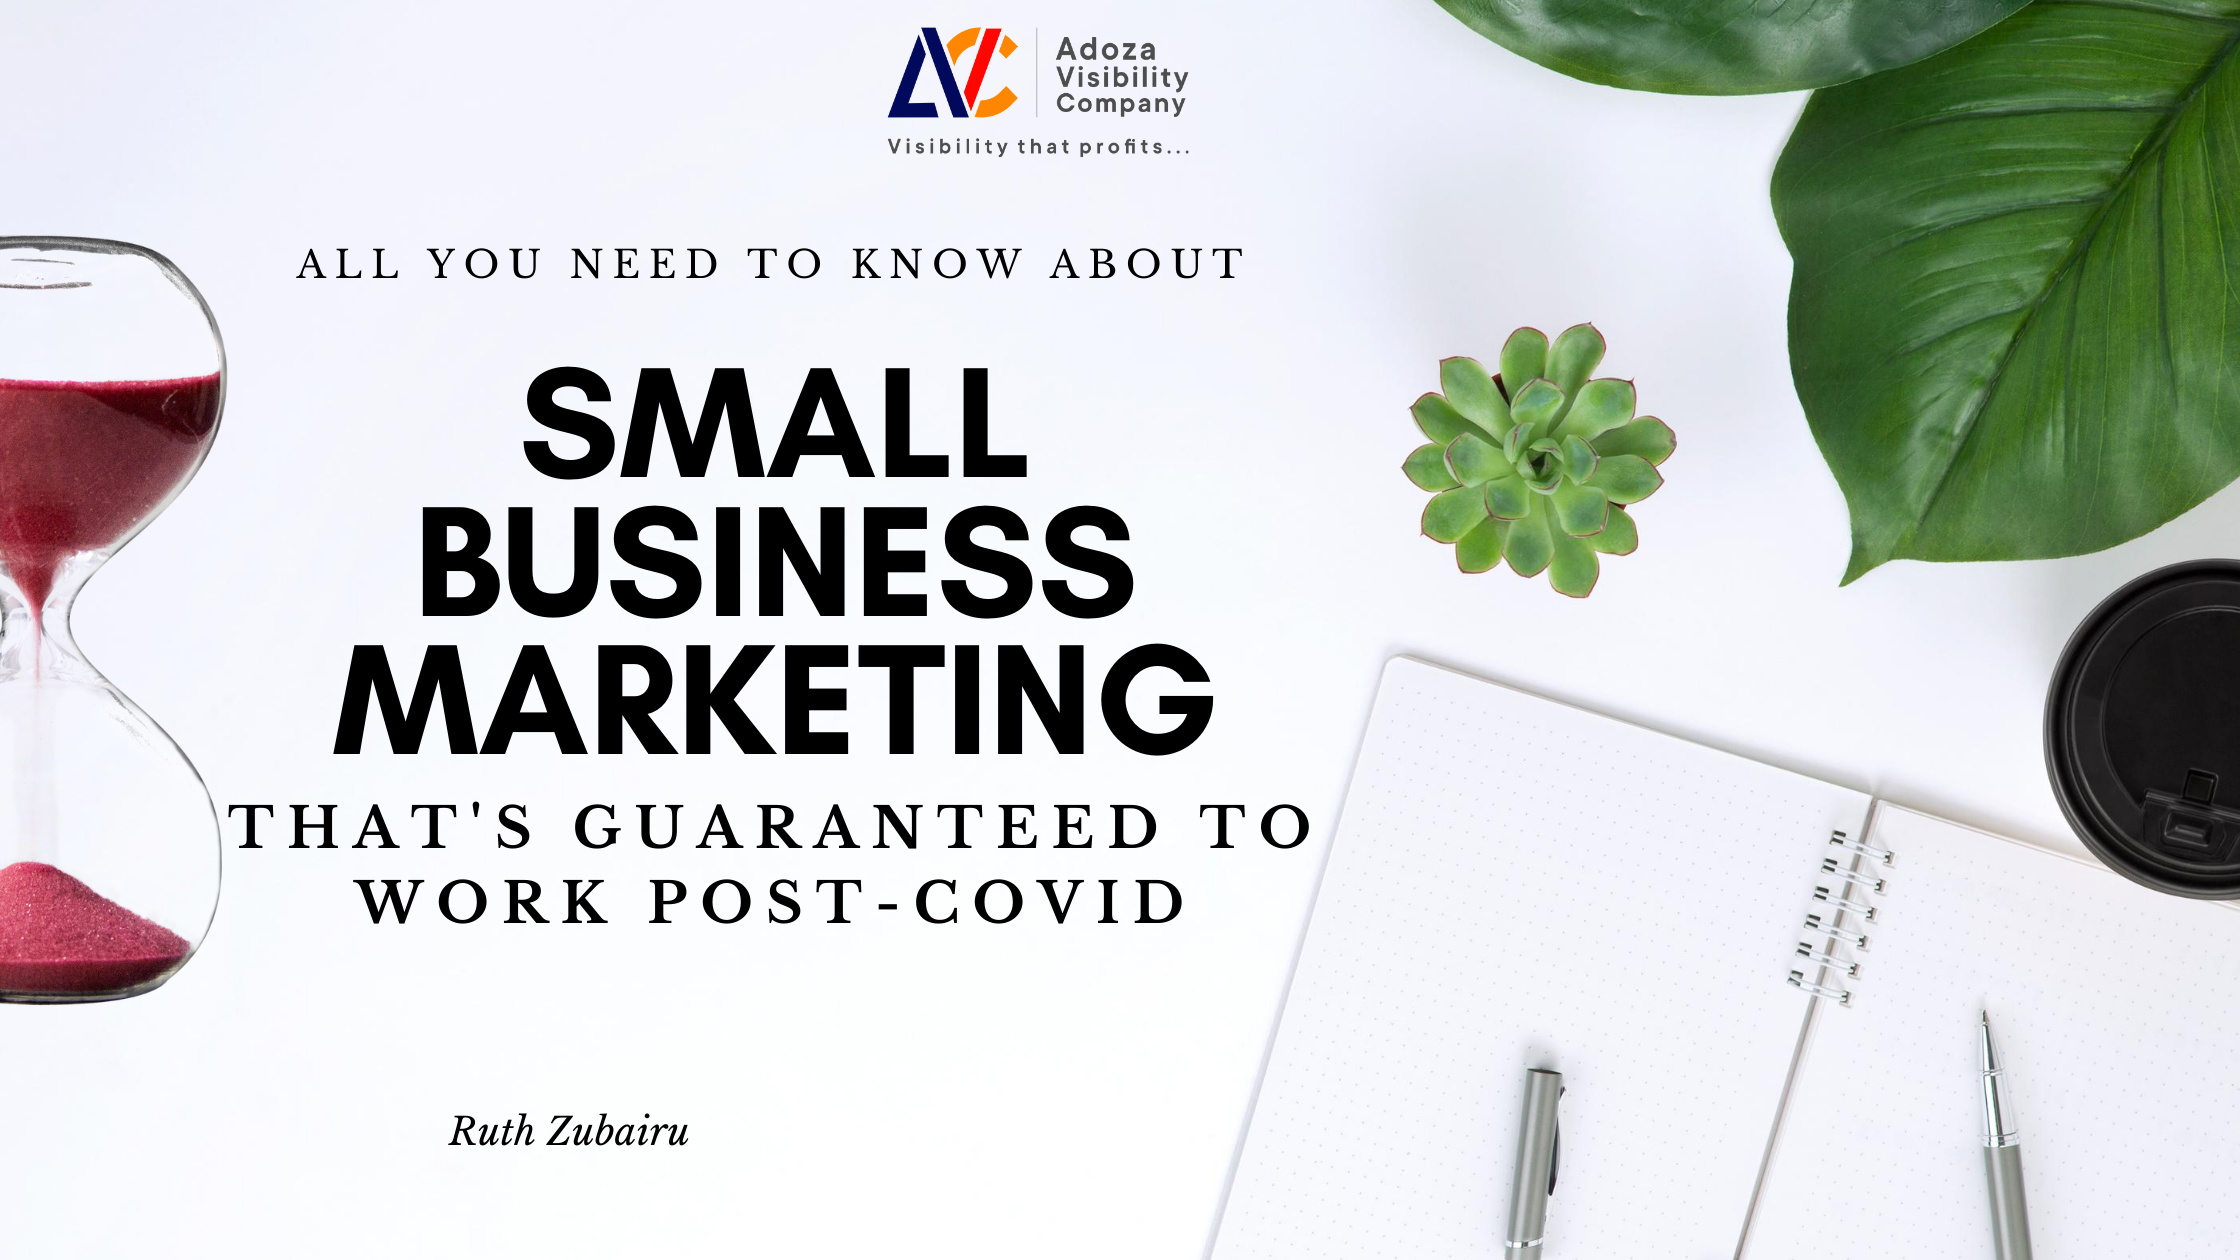 Small Business Marketing: All You Need to Know in 2020 (That's Actually Guaranteed Post-COVID!)